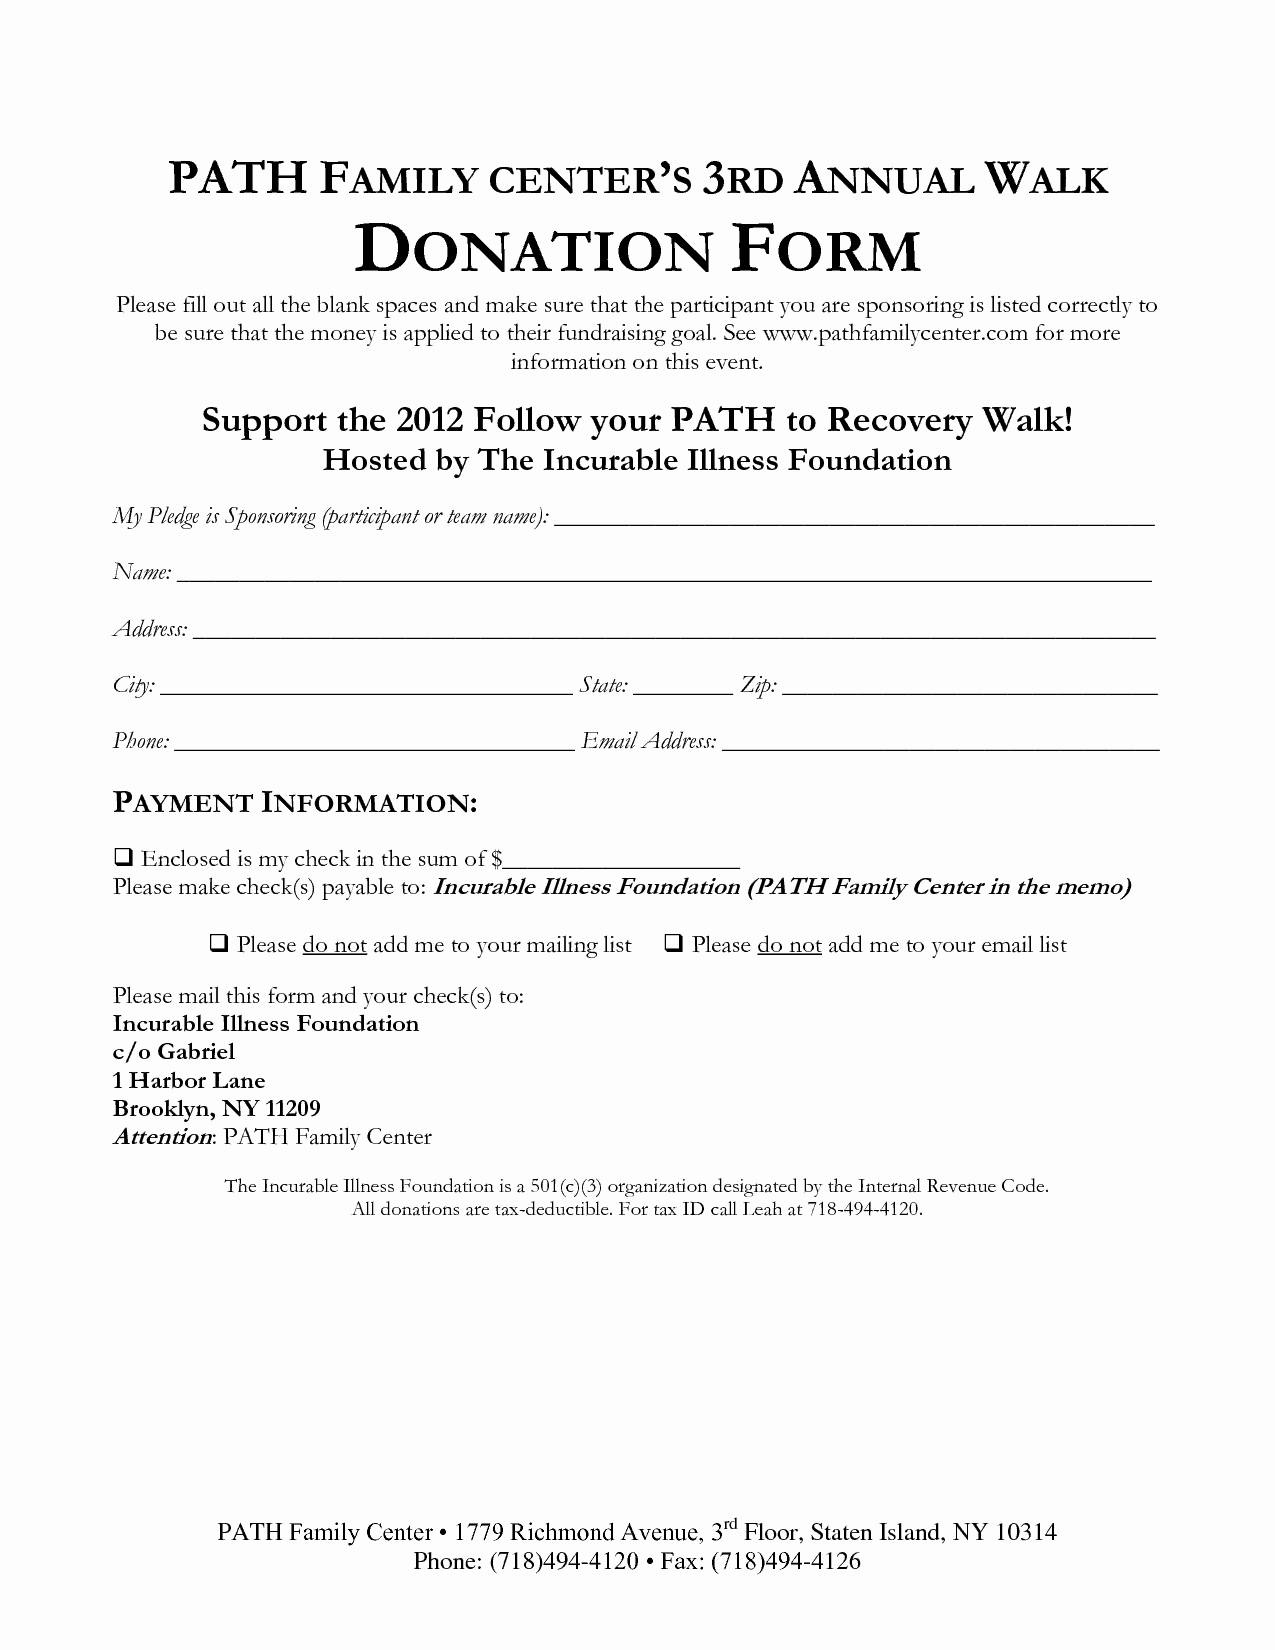 Donation form Template Free Elegant 36 Free Donation form Templates In Word Excel Pdf